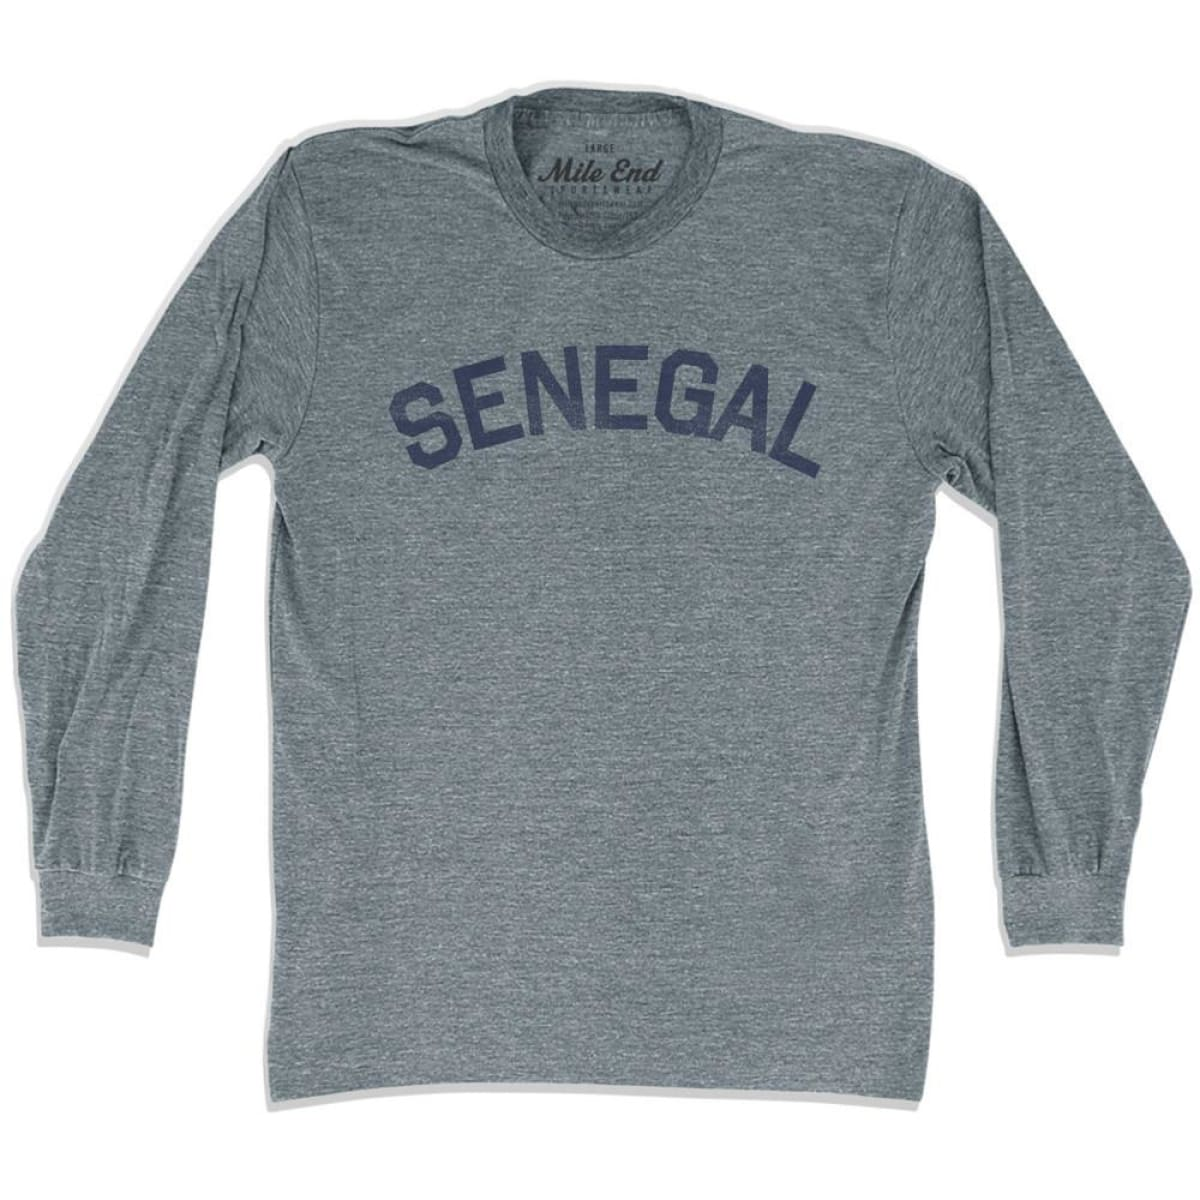 Senegal City Vintage Long Sleeve T-shirt - Athletic Grey / Adult X-Small - Mile End City